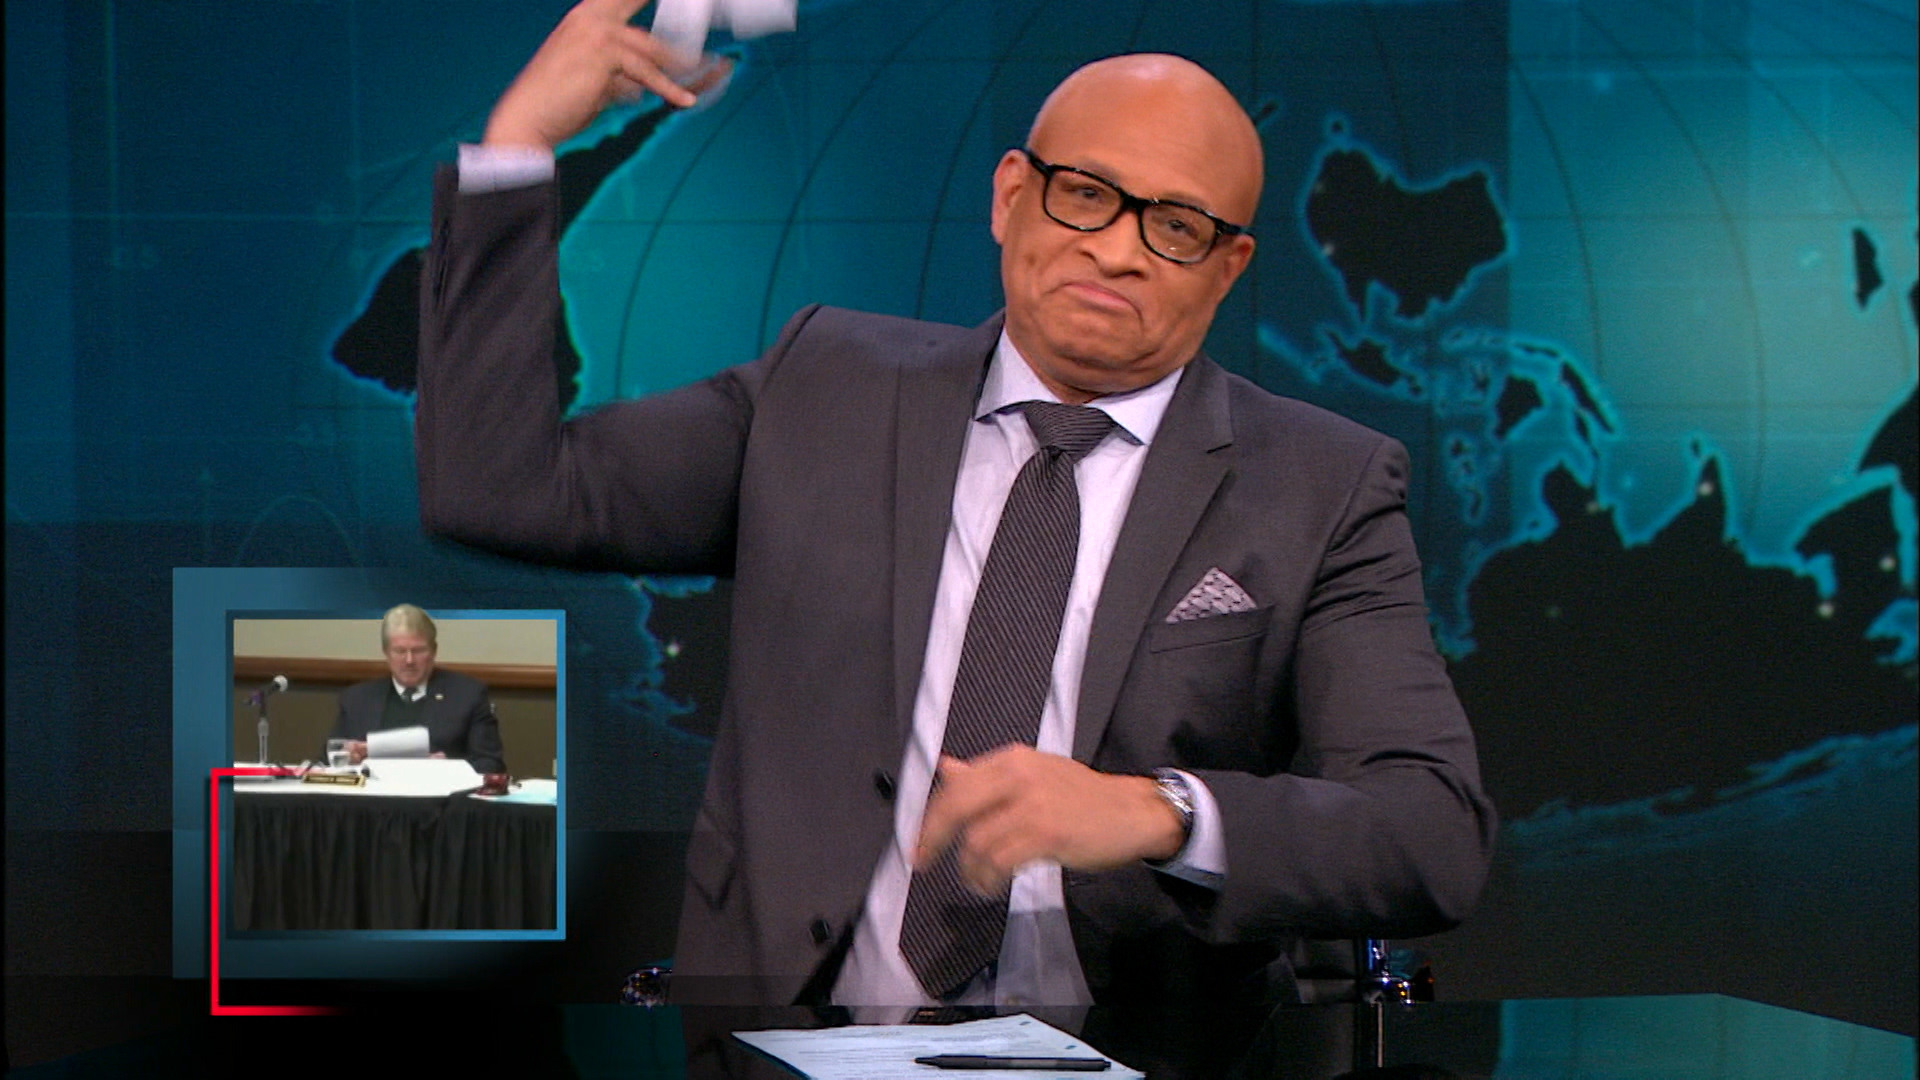 THE NIGHTLY SHOW - THE LARRY PEOPLE VS FLINT - RICK SNYDER'S IMAGE PROBLEM